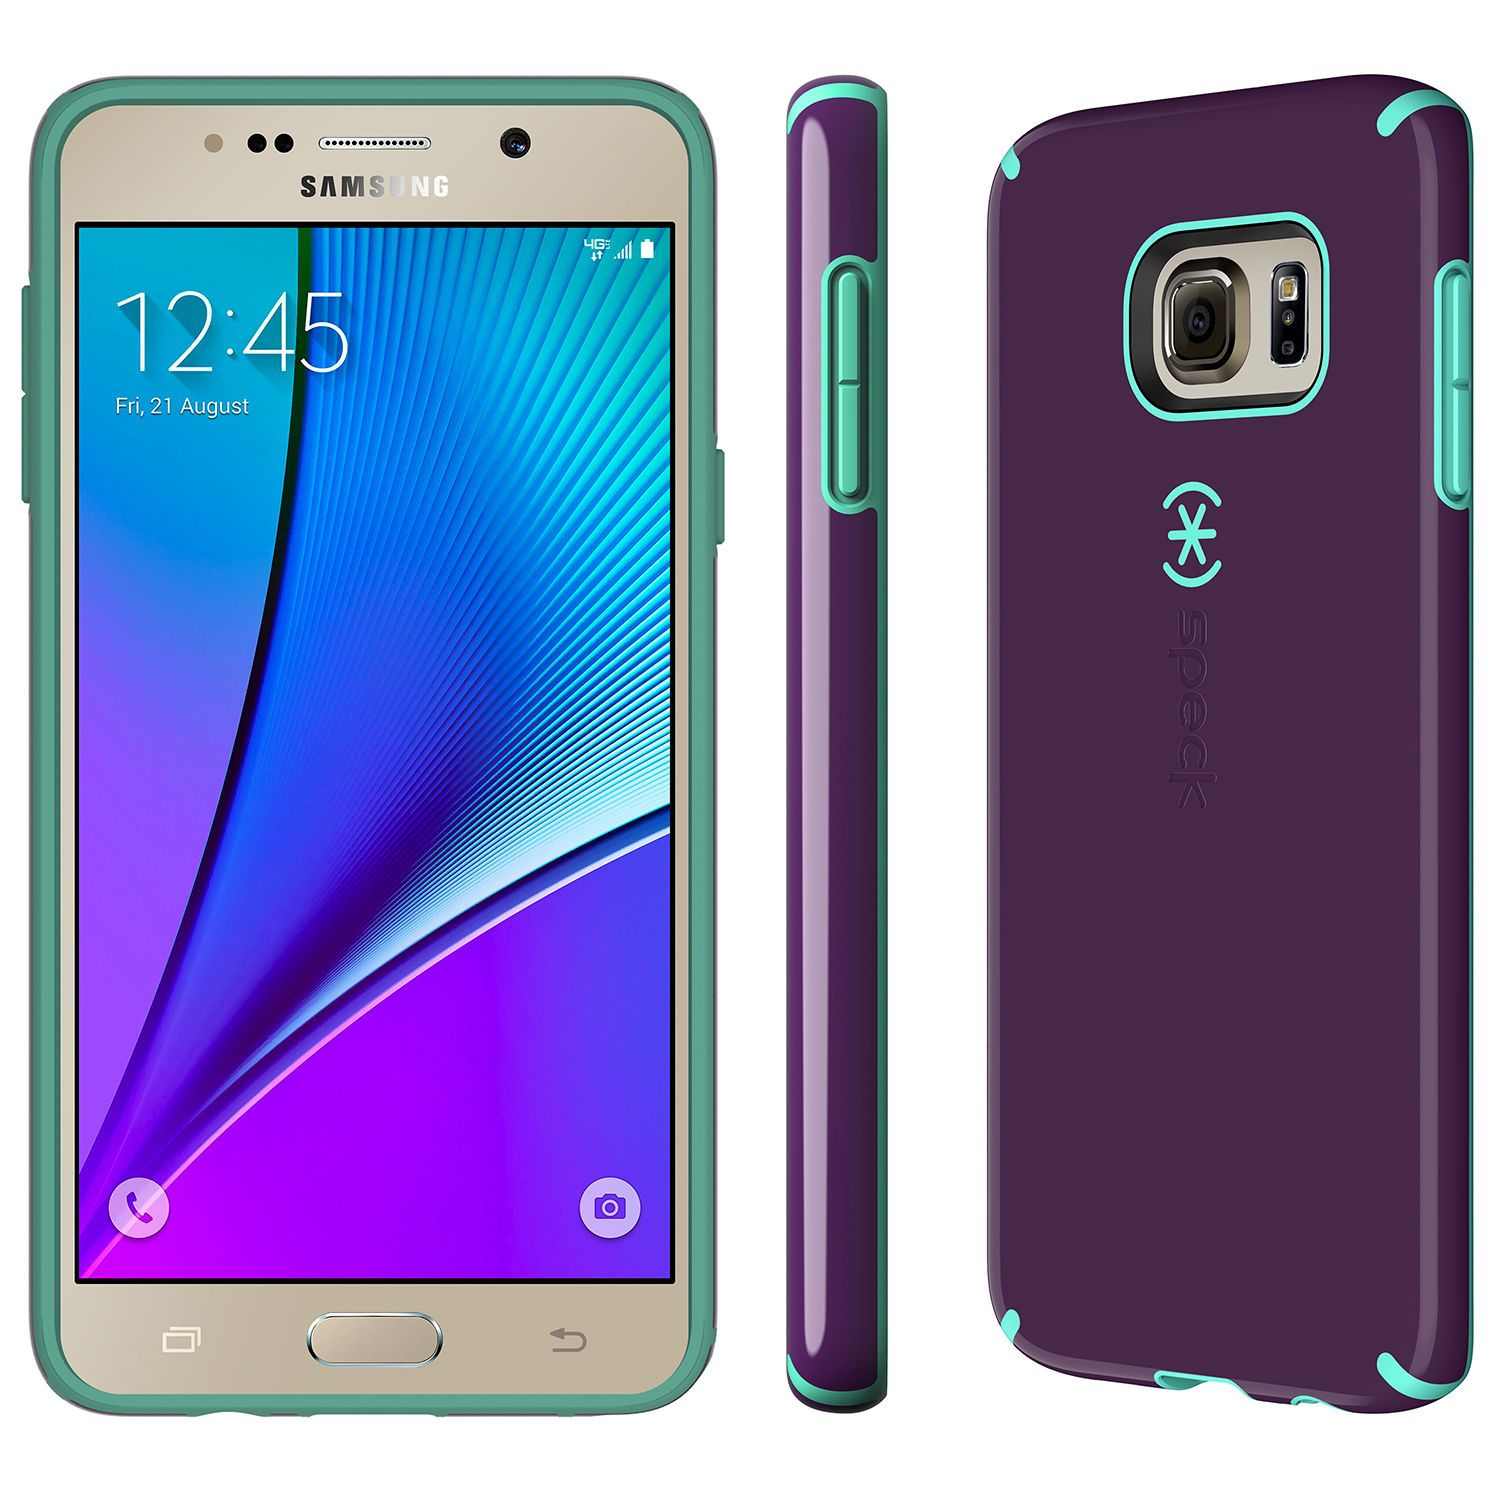 CandyShell Galaxy Note5 Cases | Phones Cases/Accessories△